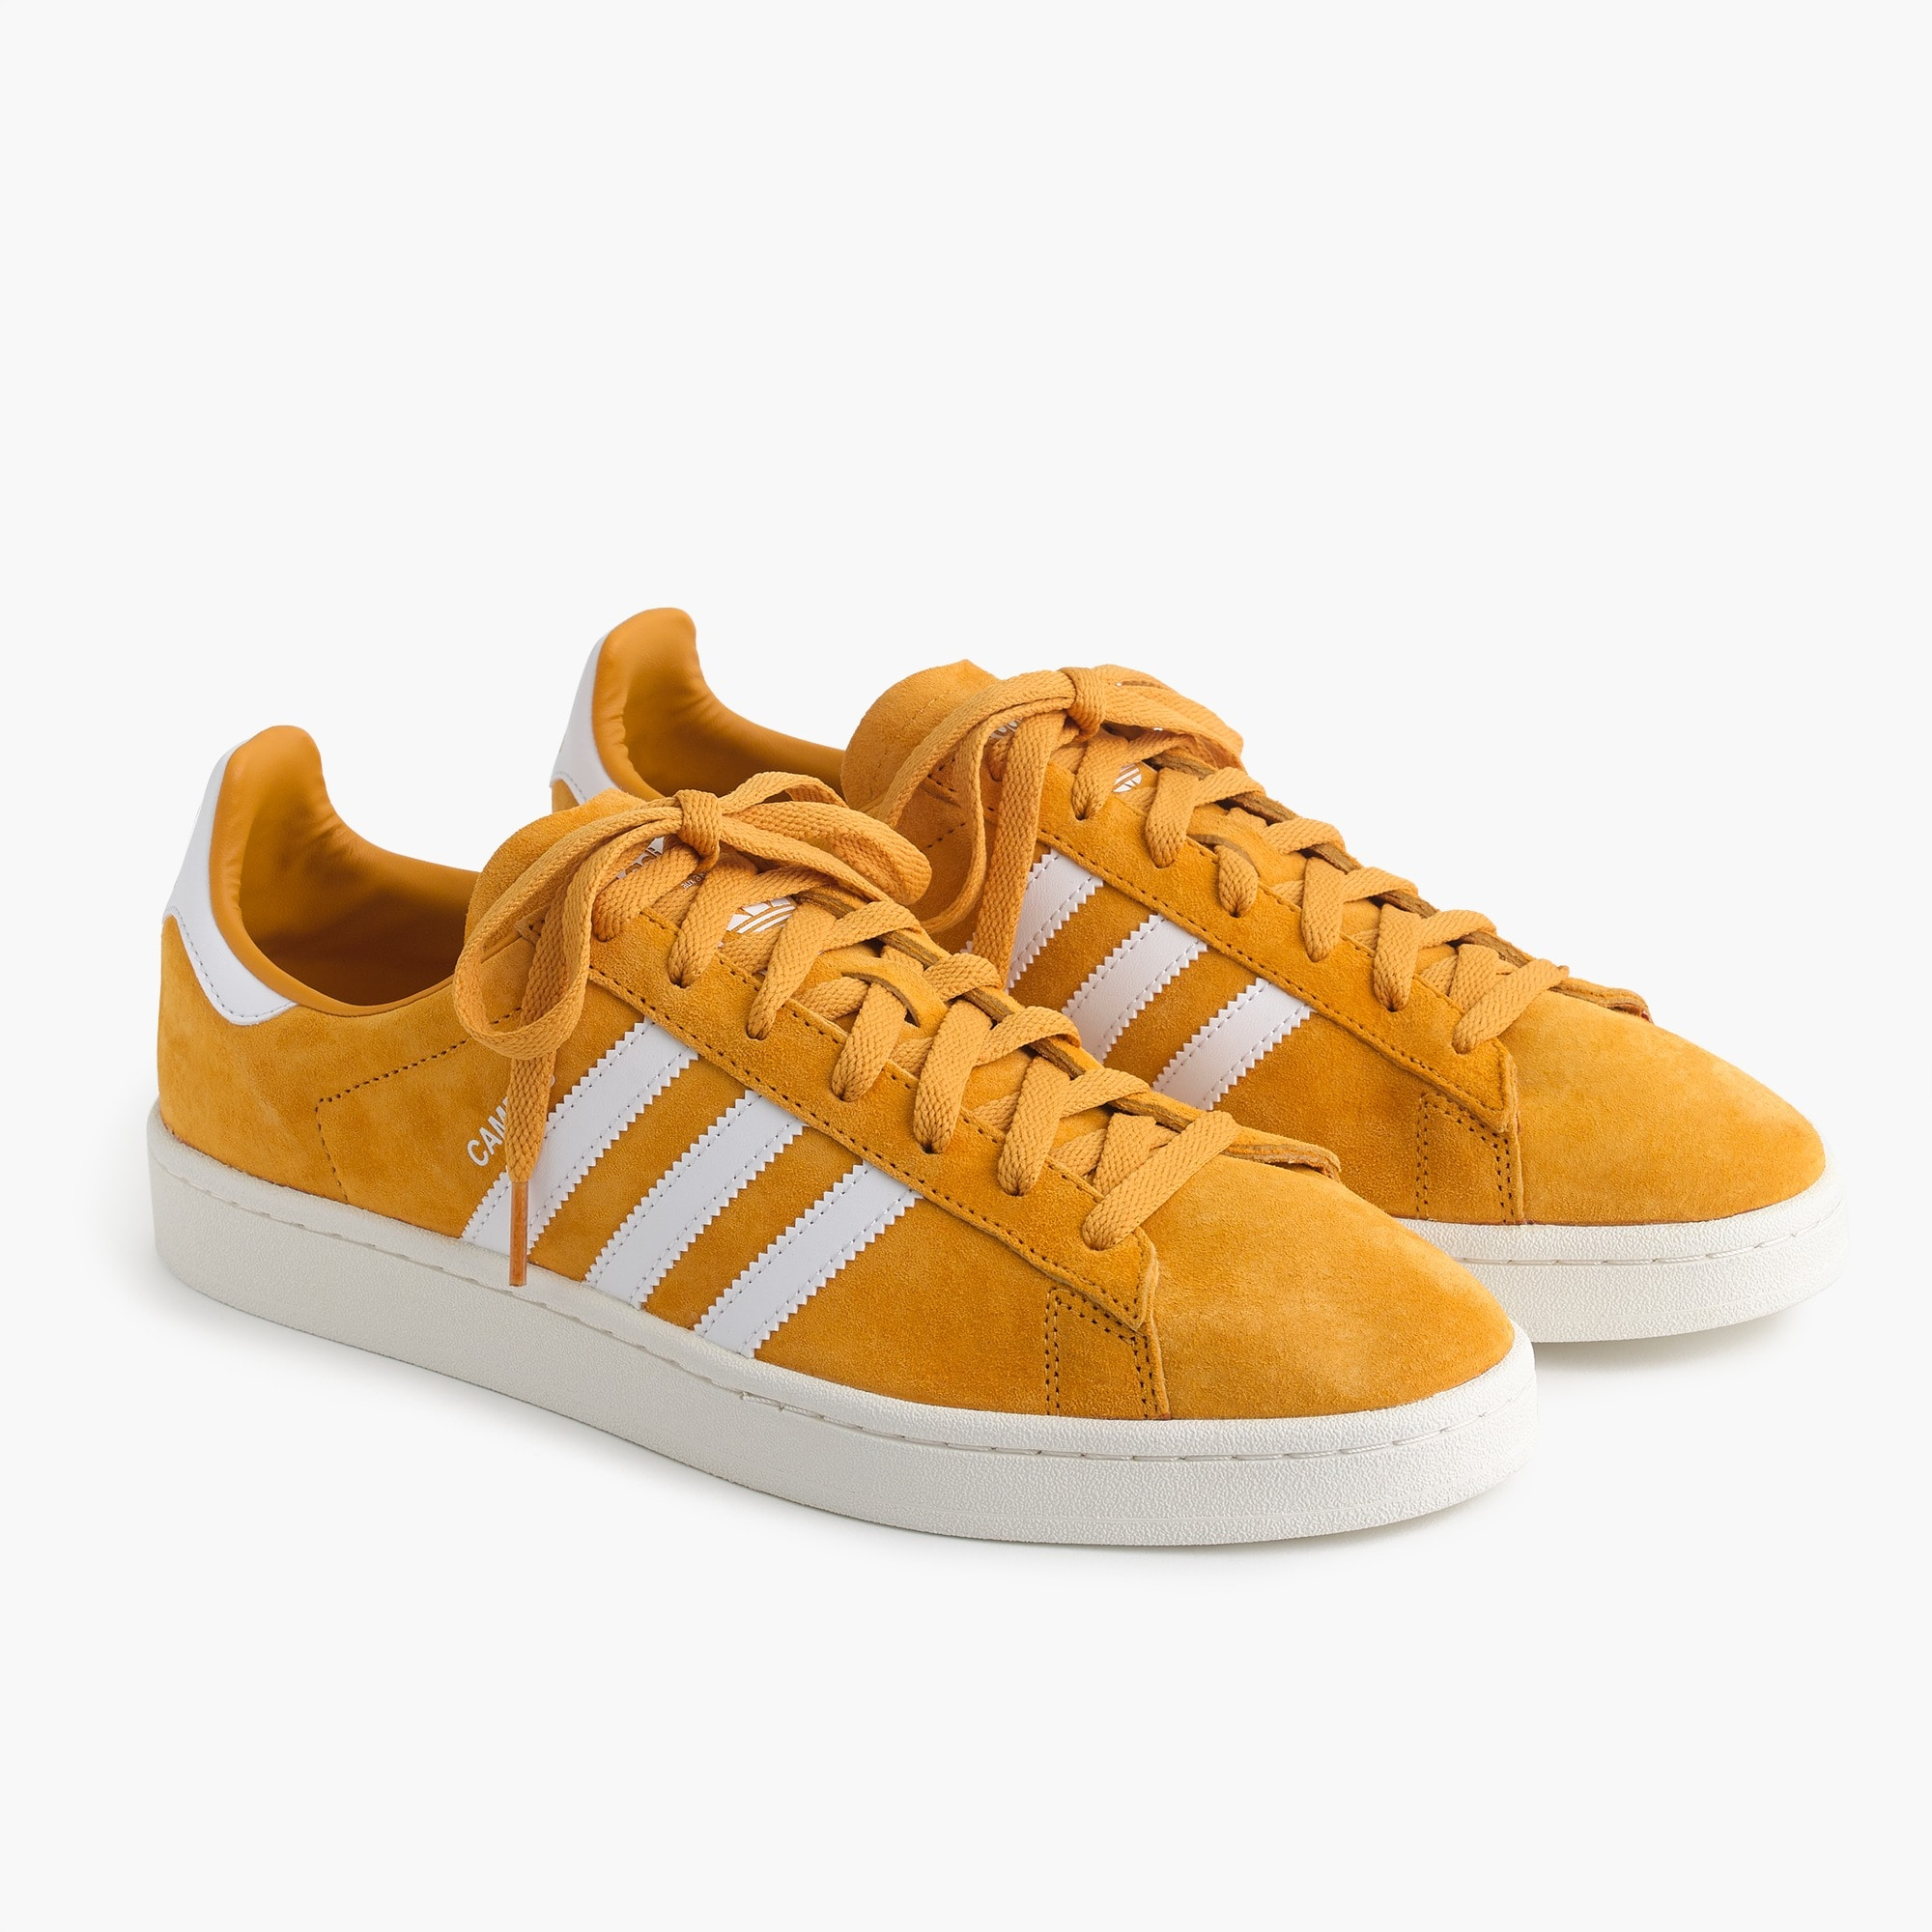 mens Adidas® suede Campus 80 sneakers